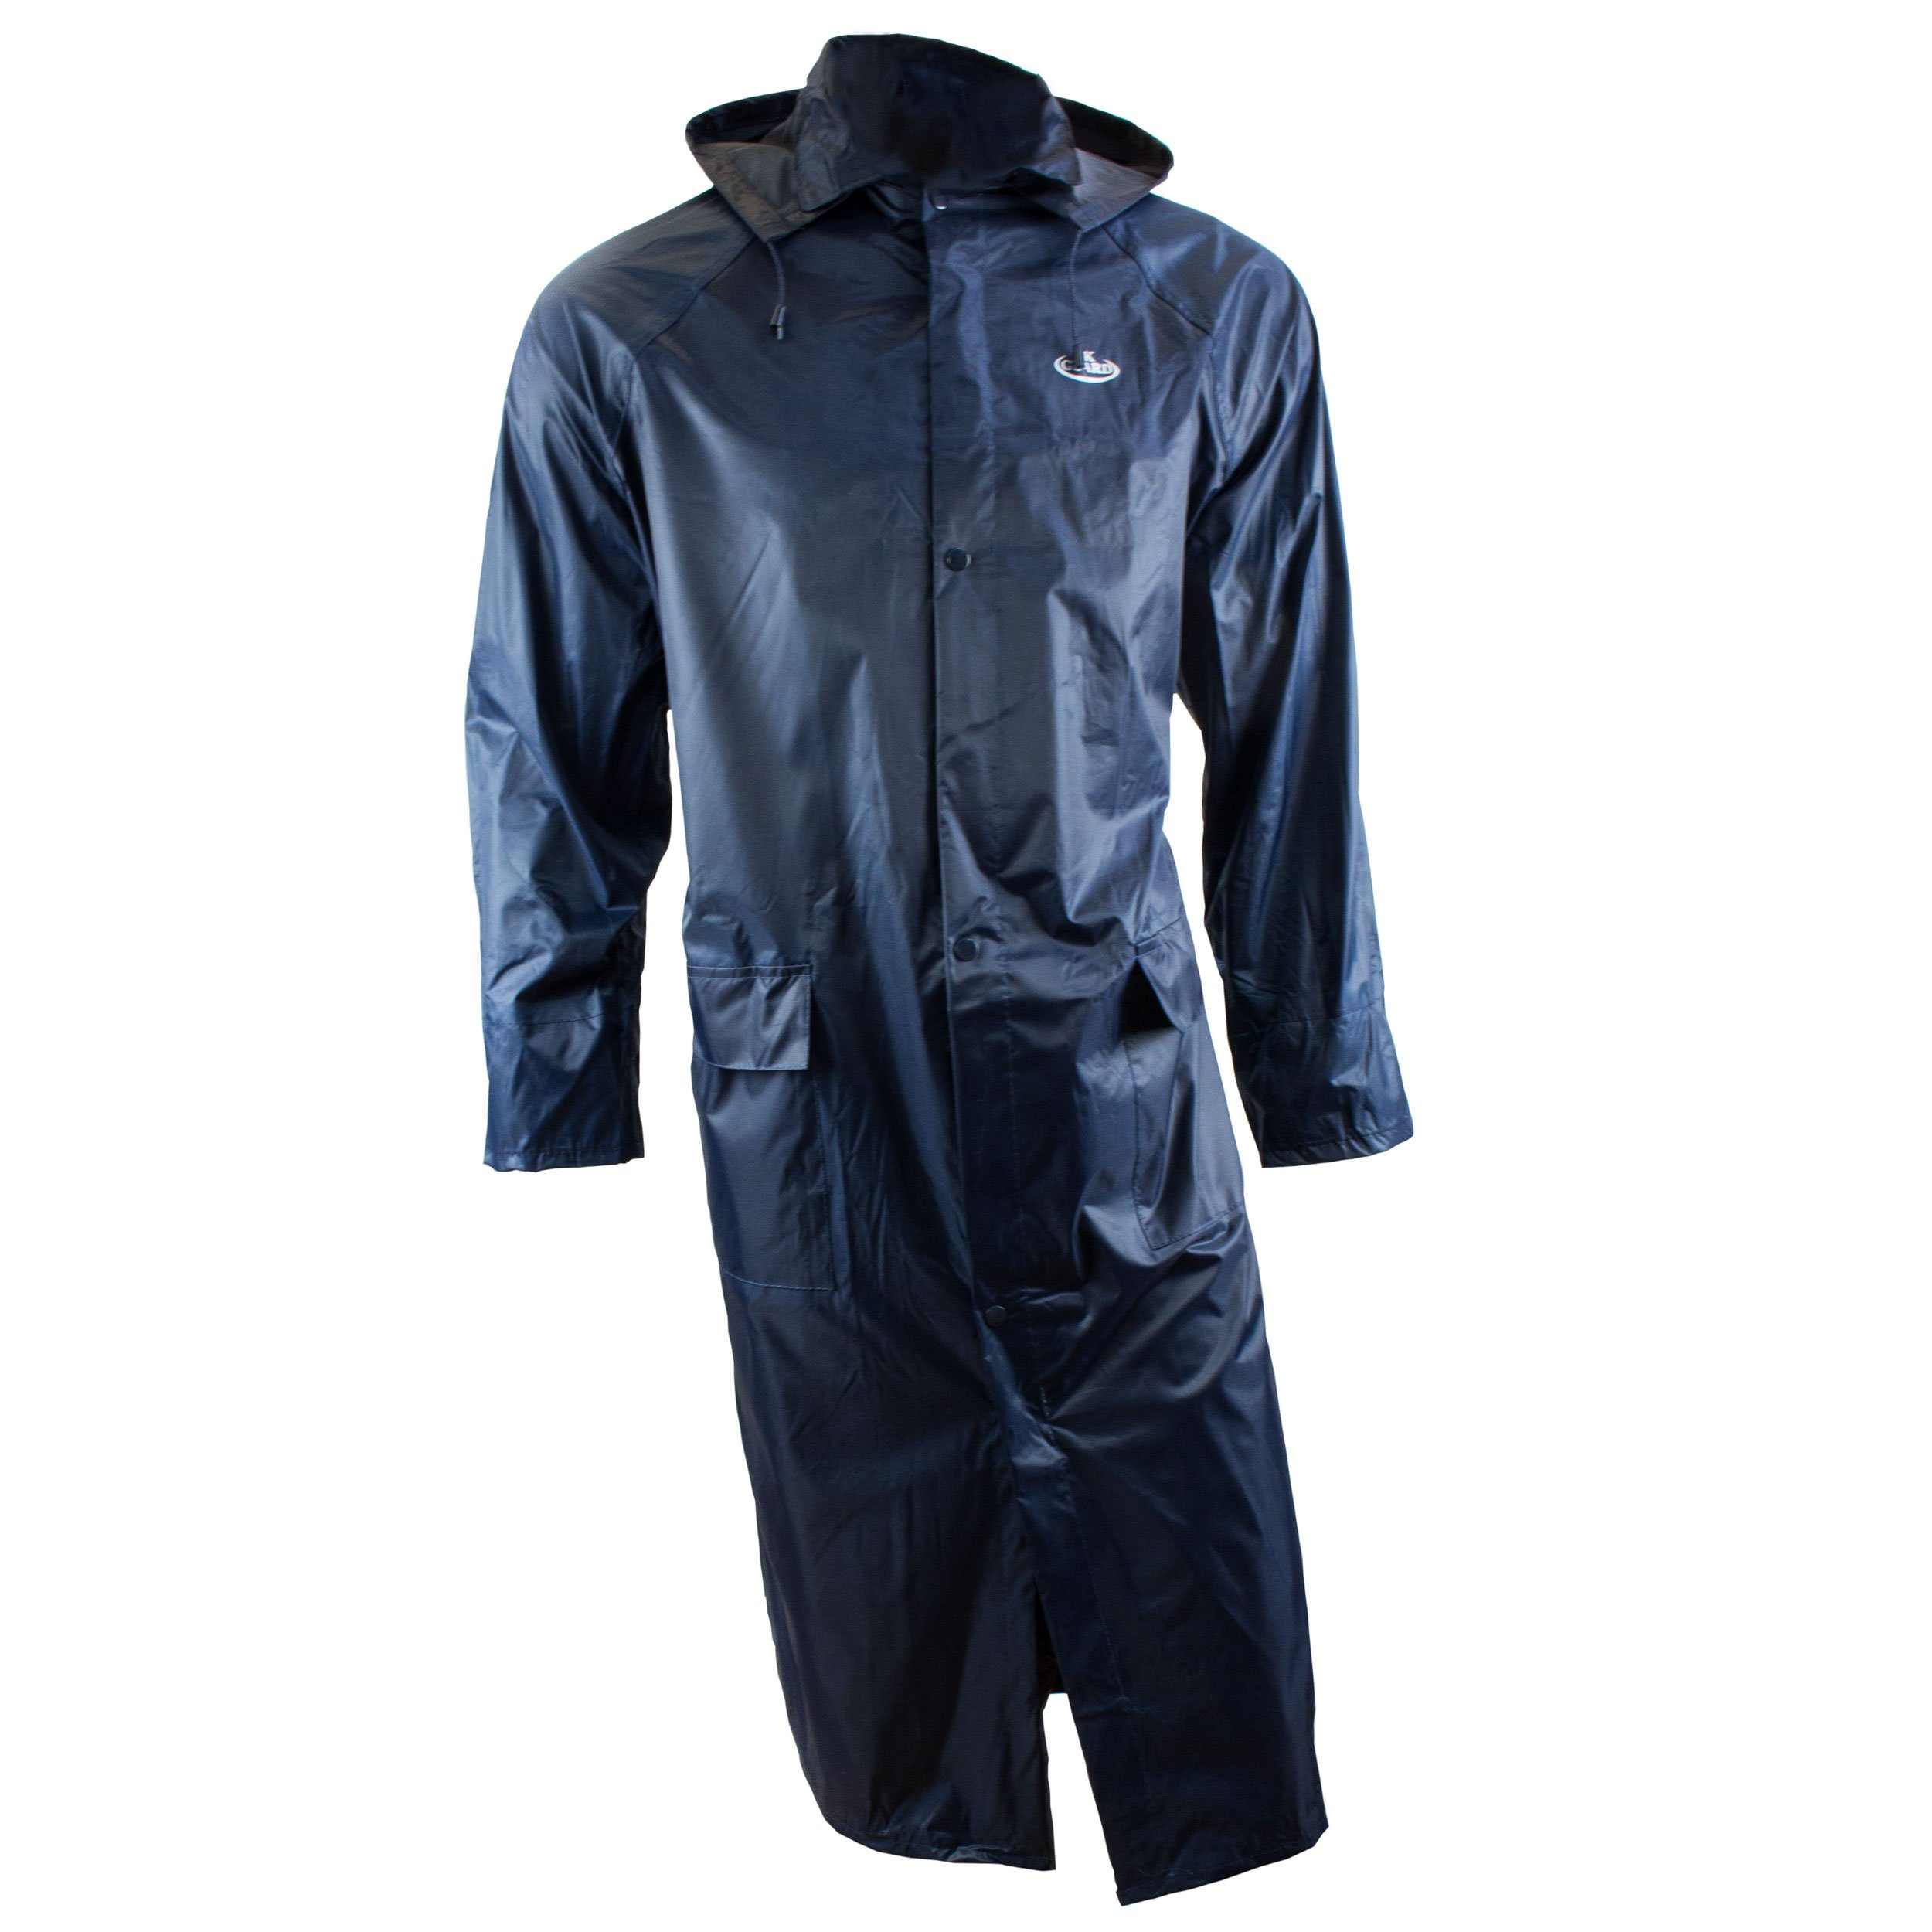 RK Safety RC-PP-NVY44 Navy PVC Polyester Trench Rain Long Coat With Hoodie(Navy, 2XL)